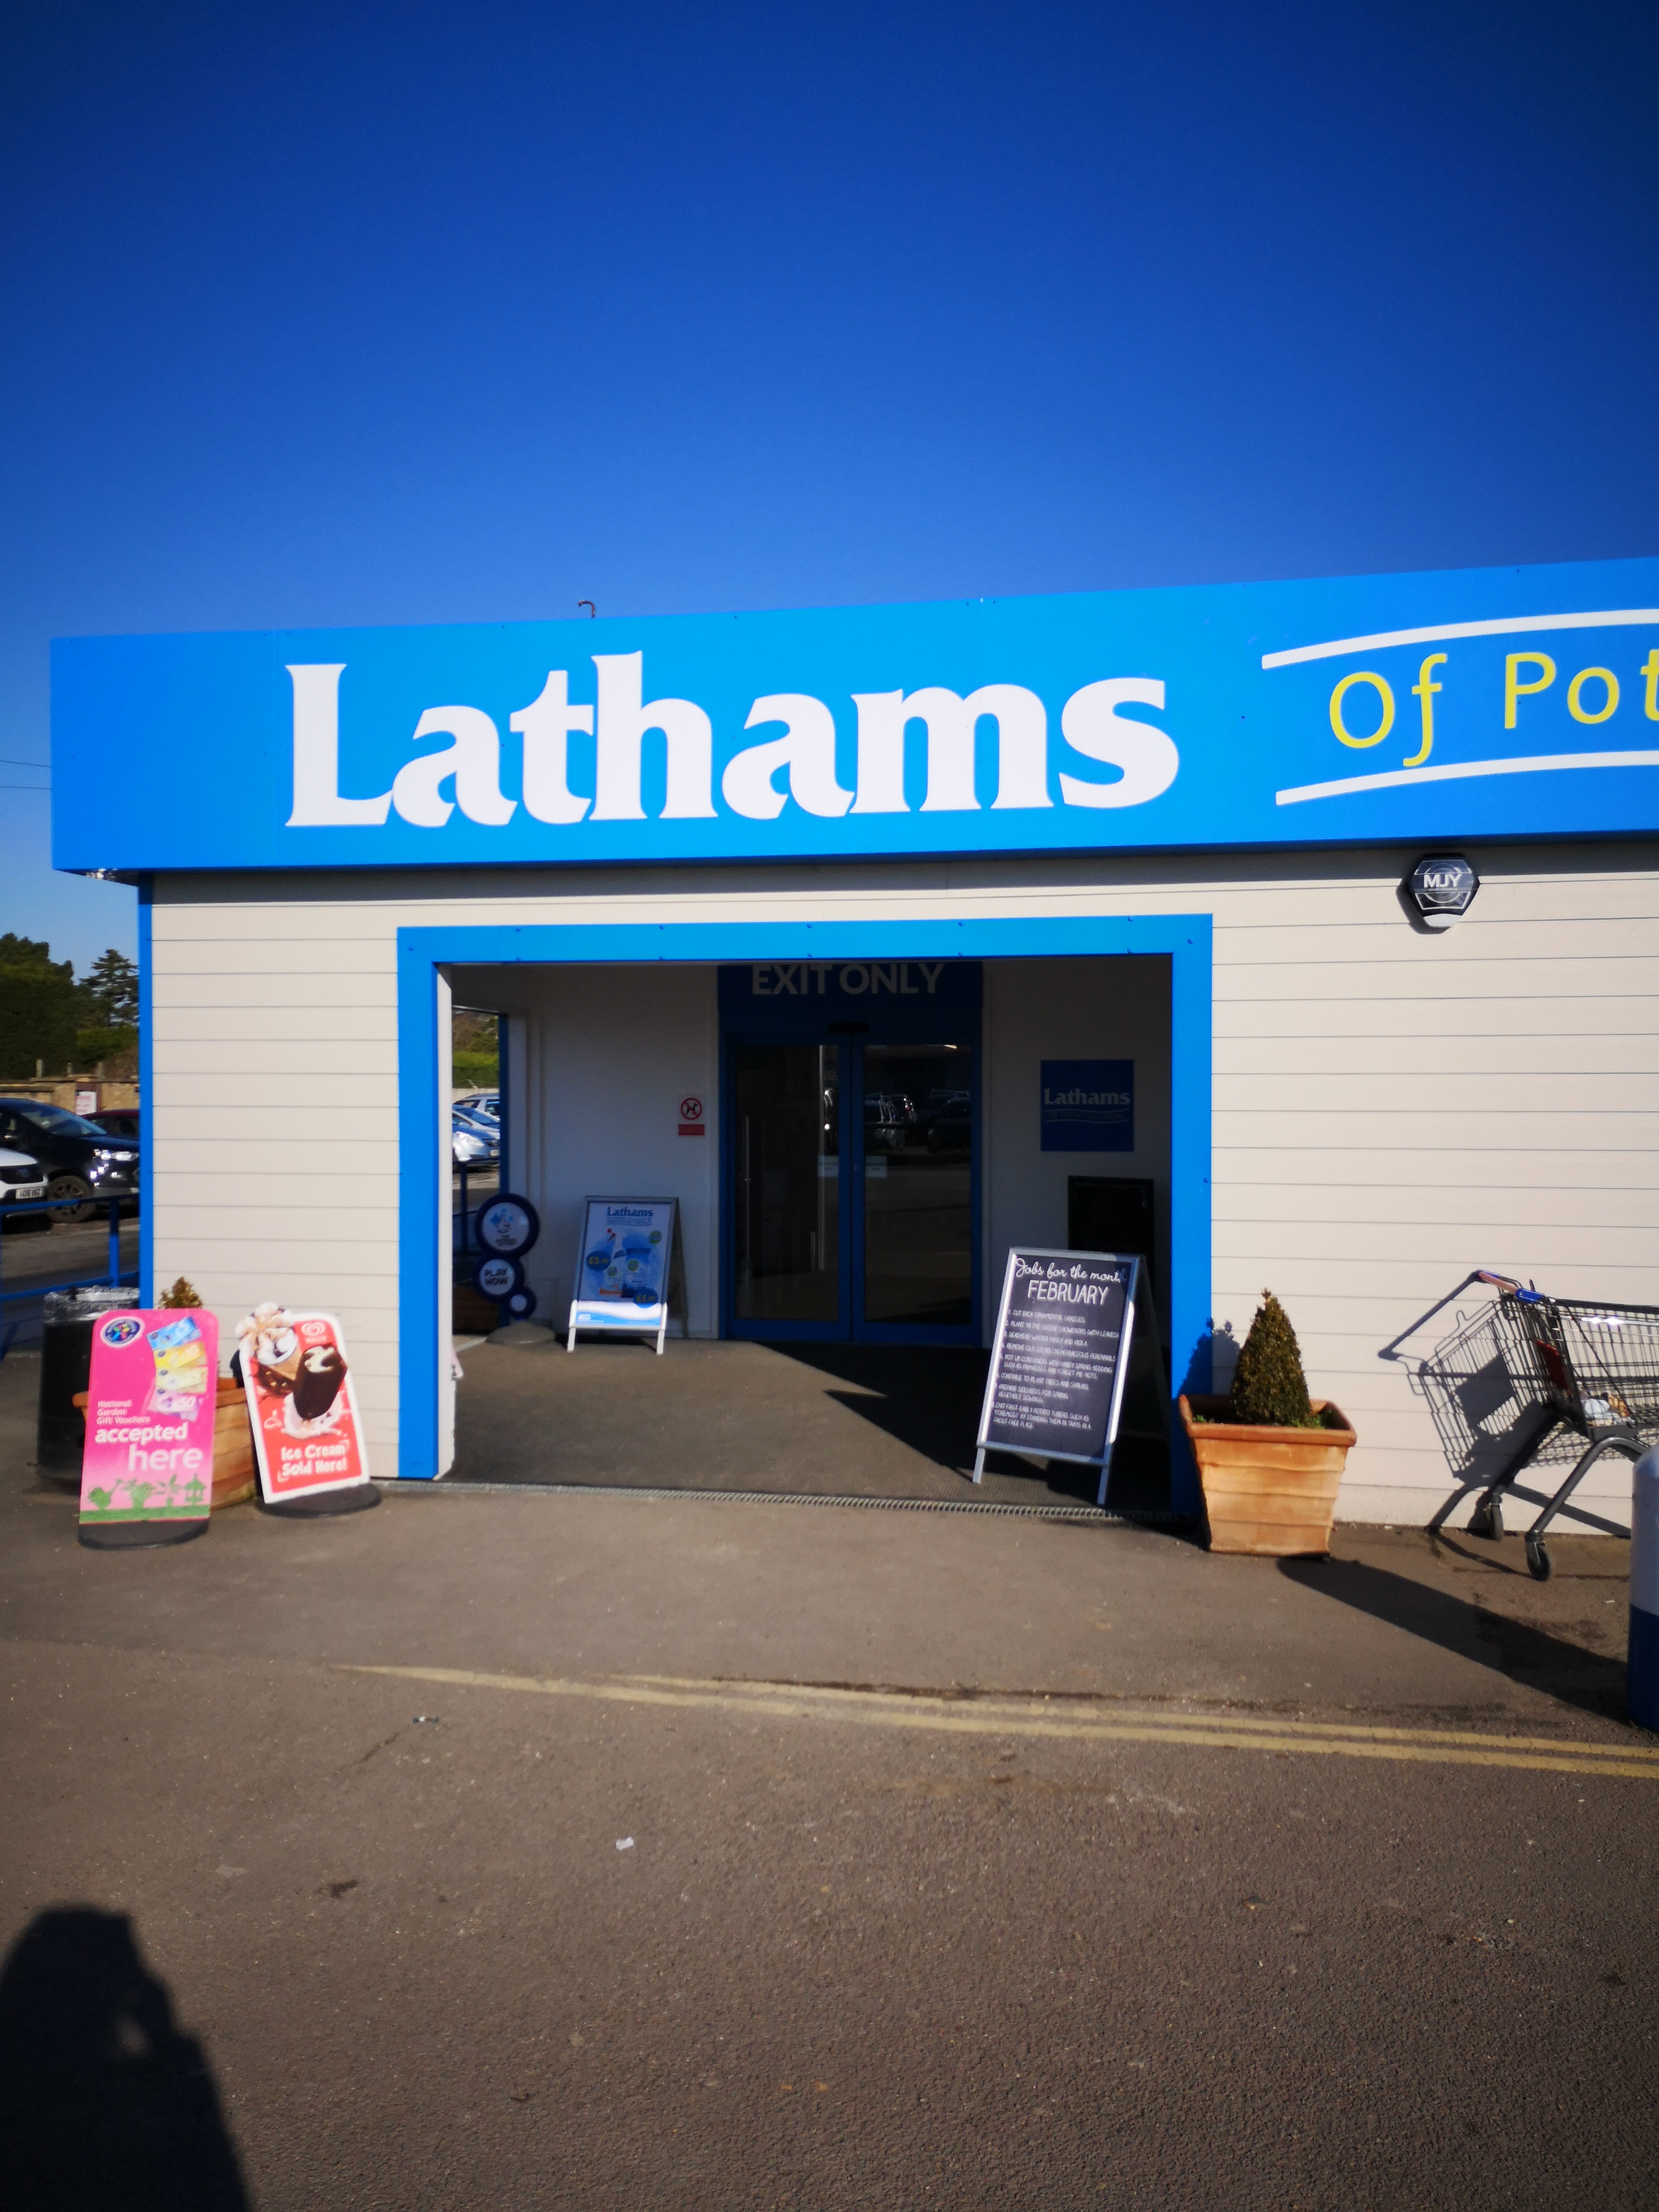 Lathams of Potter Heigham - Great Yarmouth, Norfolk NR29 5JE - 01692 670080 | ShowMeLocal.com